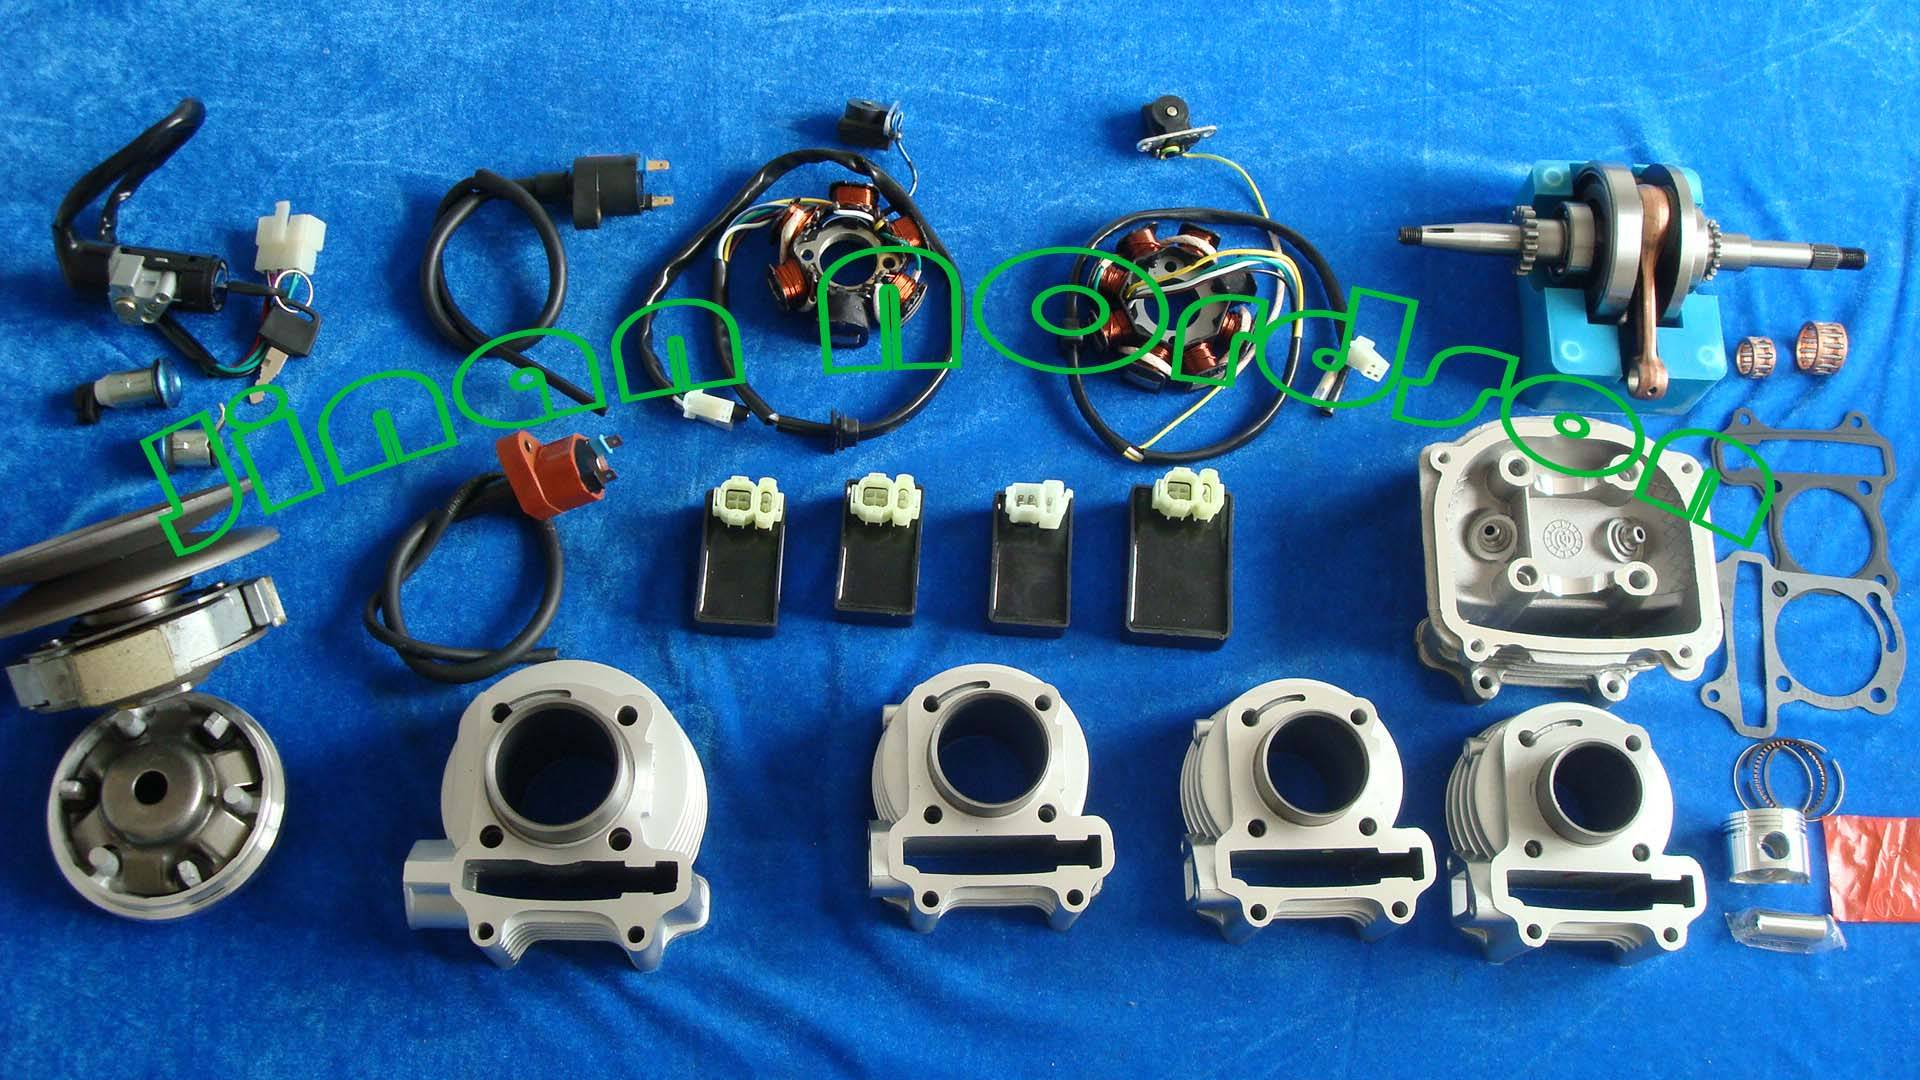 GY6 spare parts